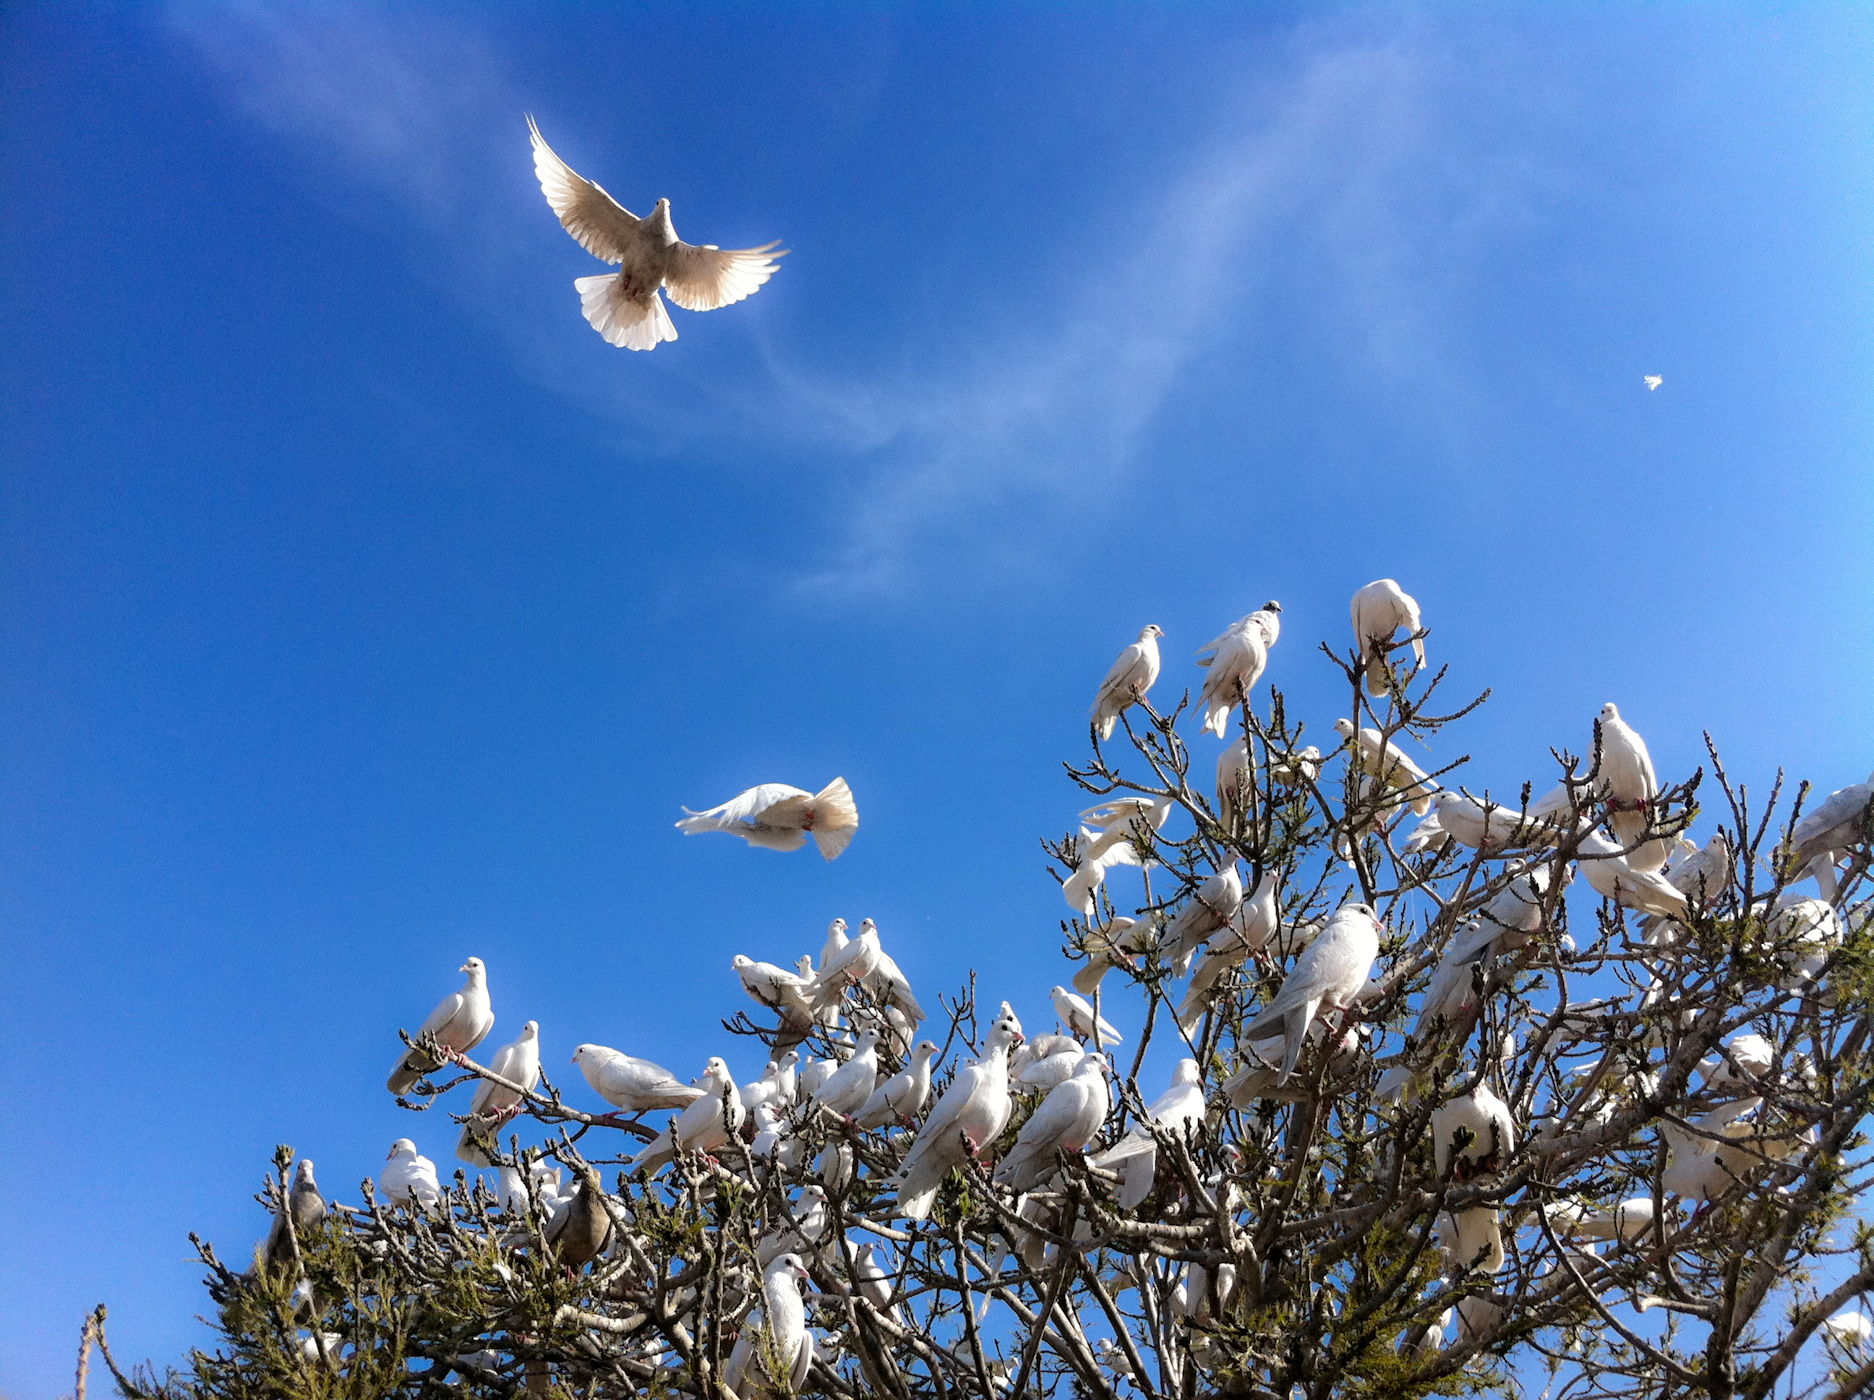 'White Doves at the Blue Mosque' by Peretz Partensky from San Francisco, USA  Creative Commons Attribution-Share Alike 2.0 Generic